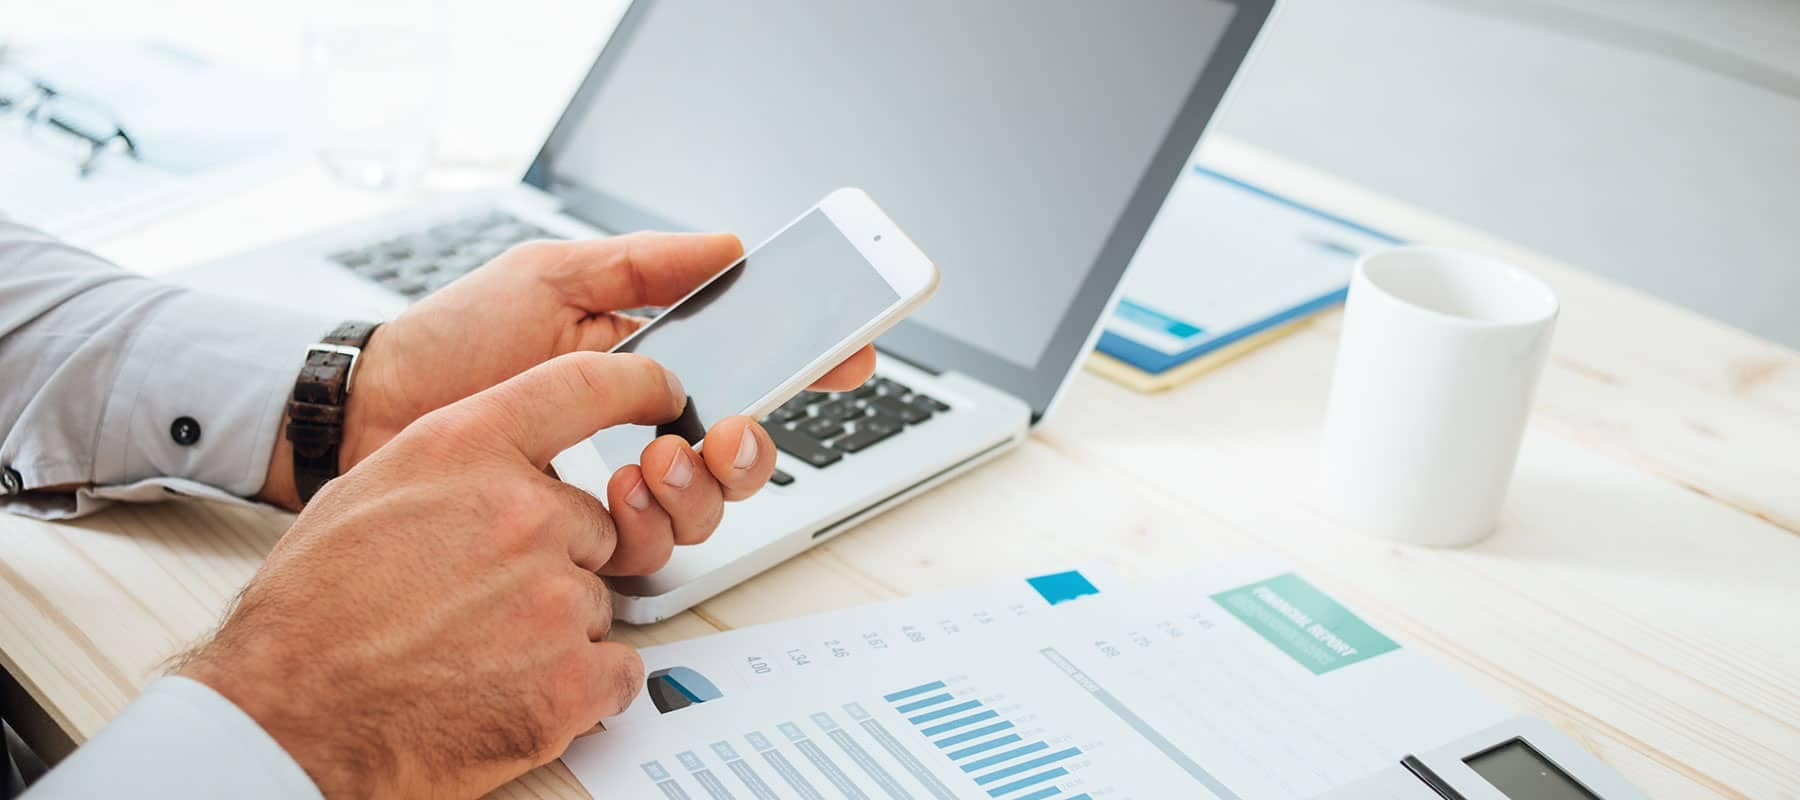 Person using smartphone with laptop and finance papers on desk